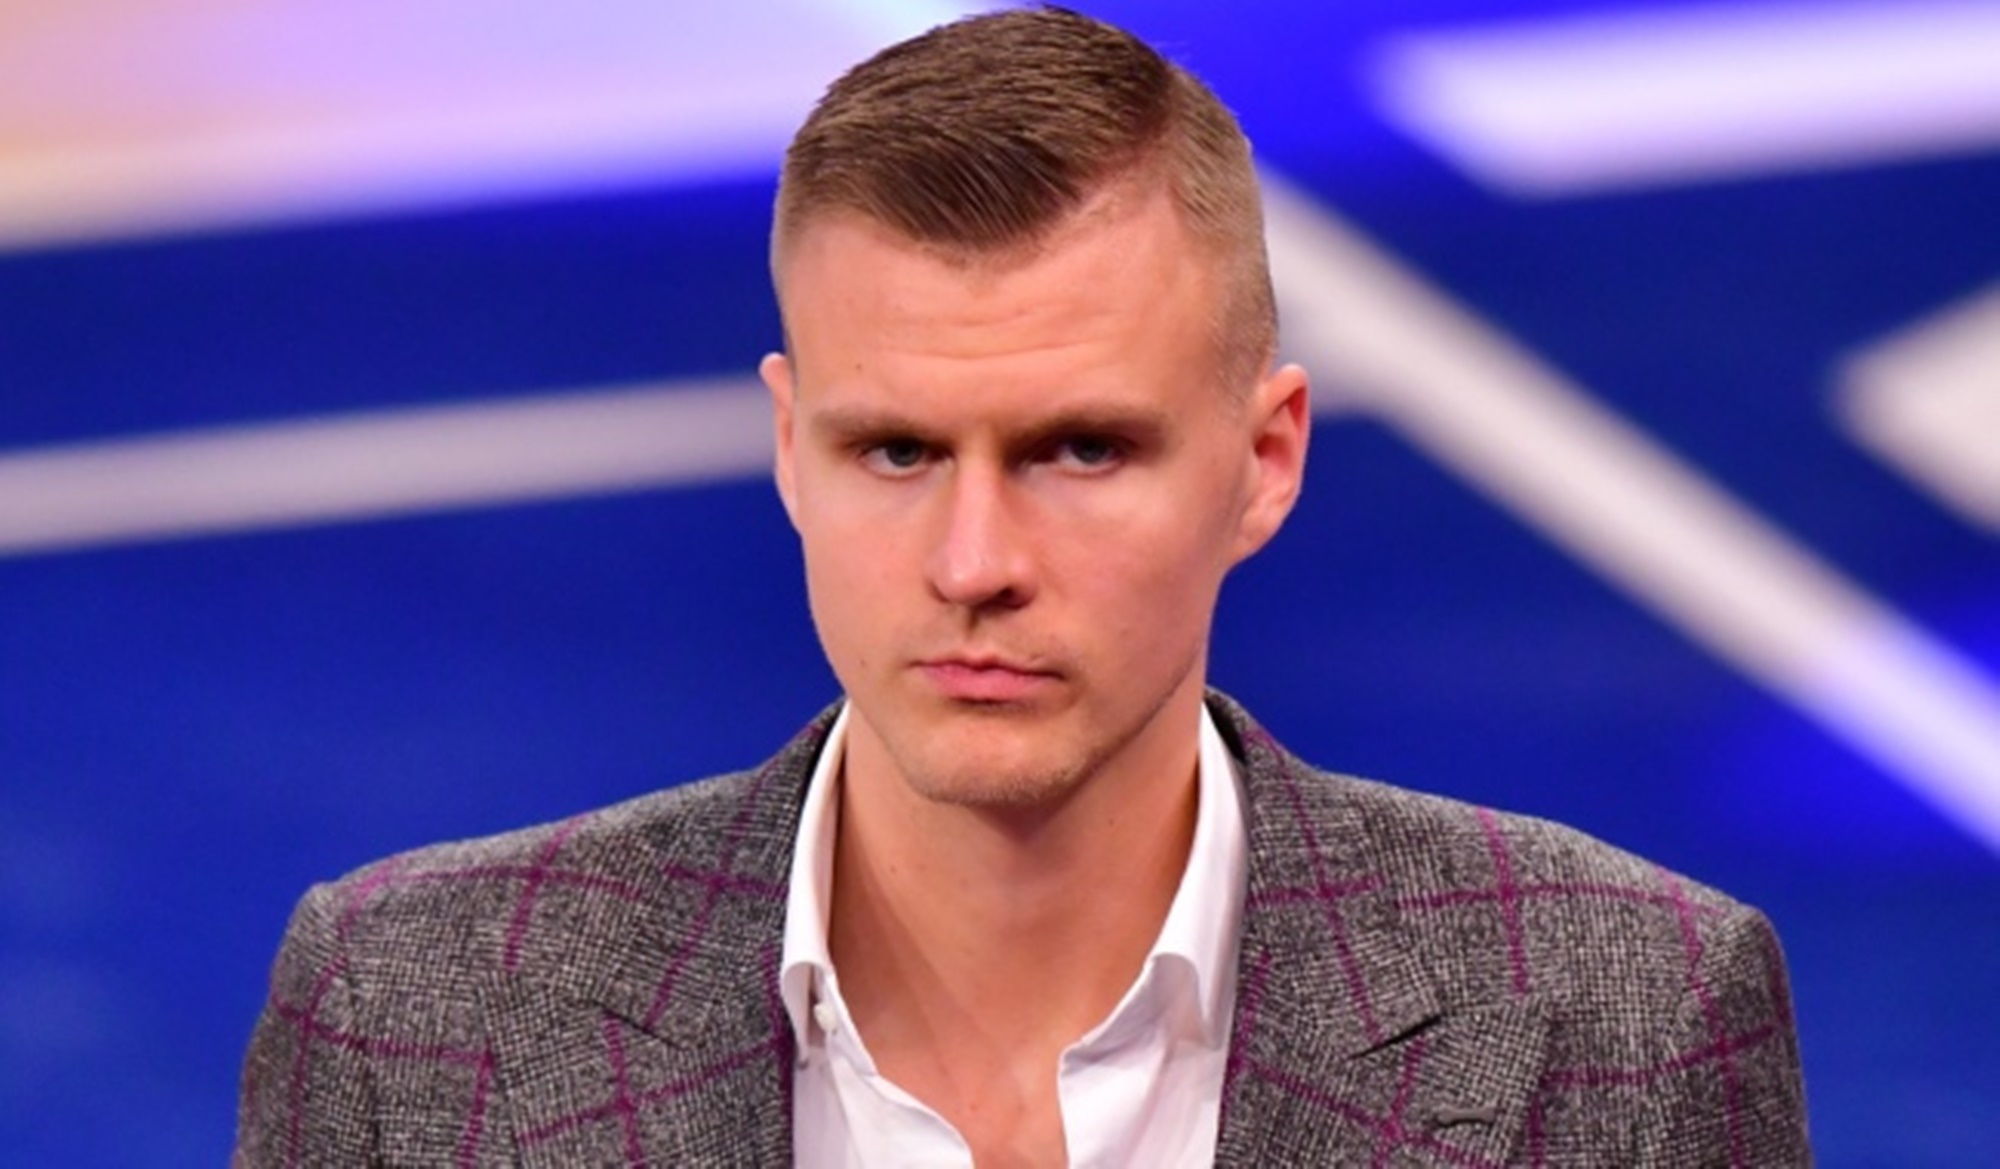 kristaps-porzingis-called-black-woman-his-slave-as-he-beat-and-raped-her-report